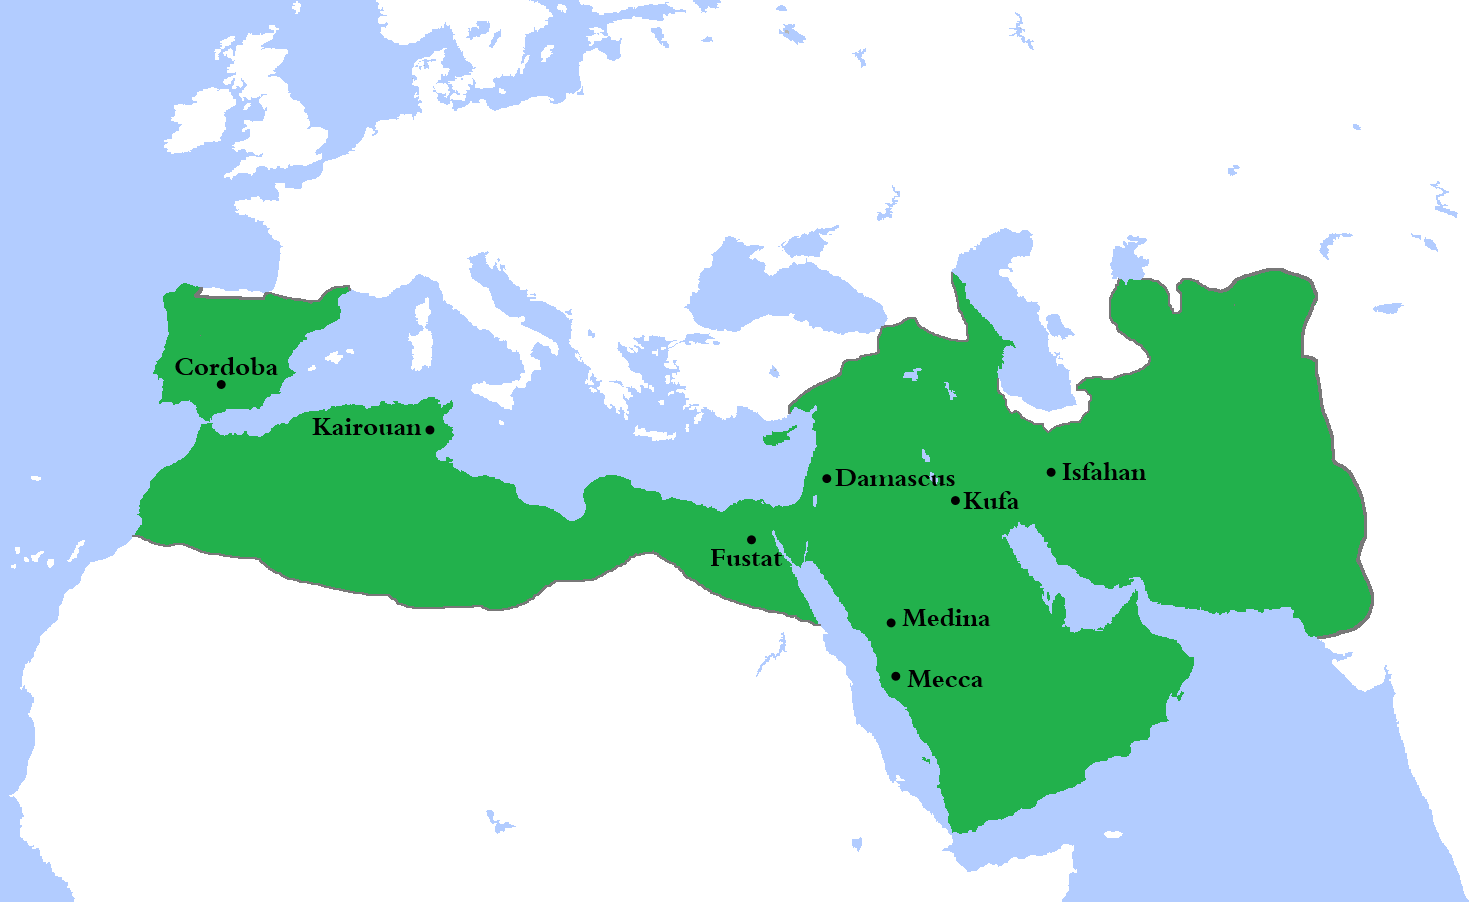 http://upload.wikimedia.org/wikipedia/commons/5/5b/Umayyad750ADloc.png